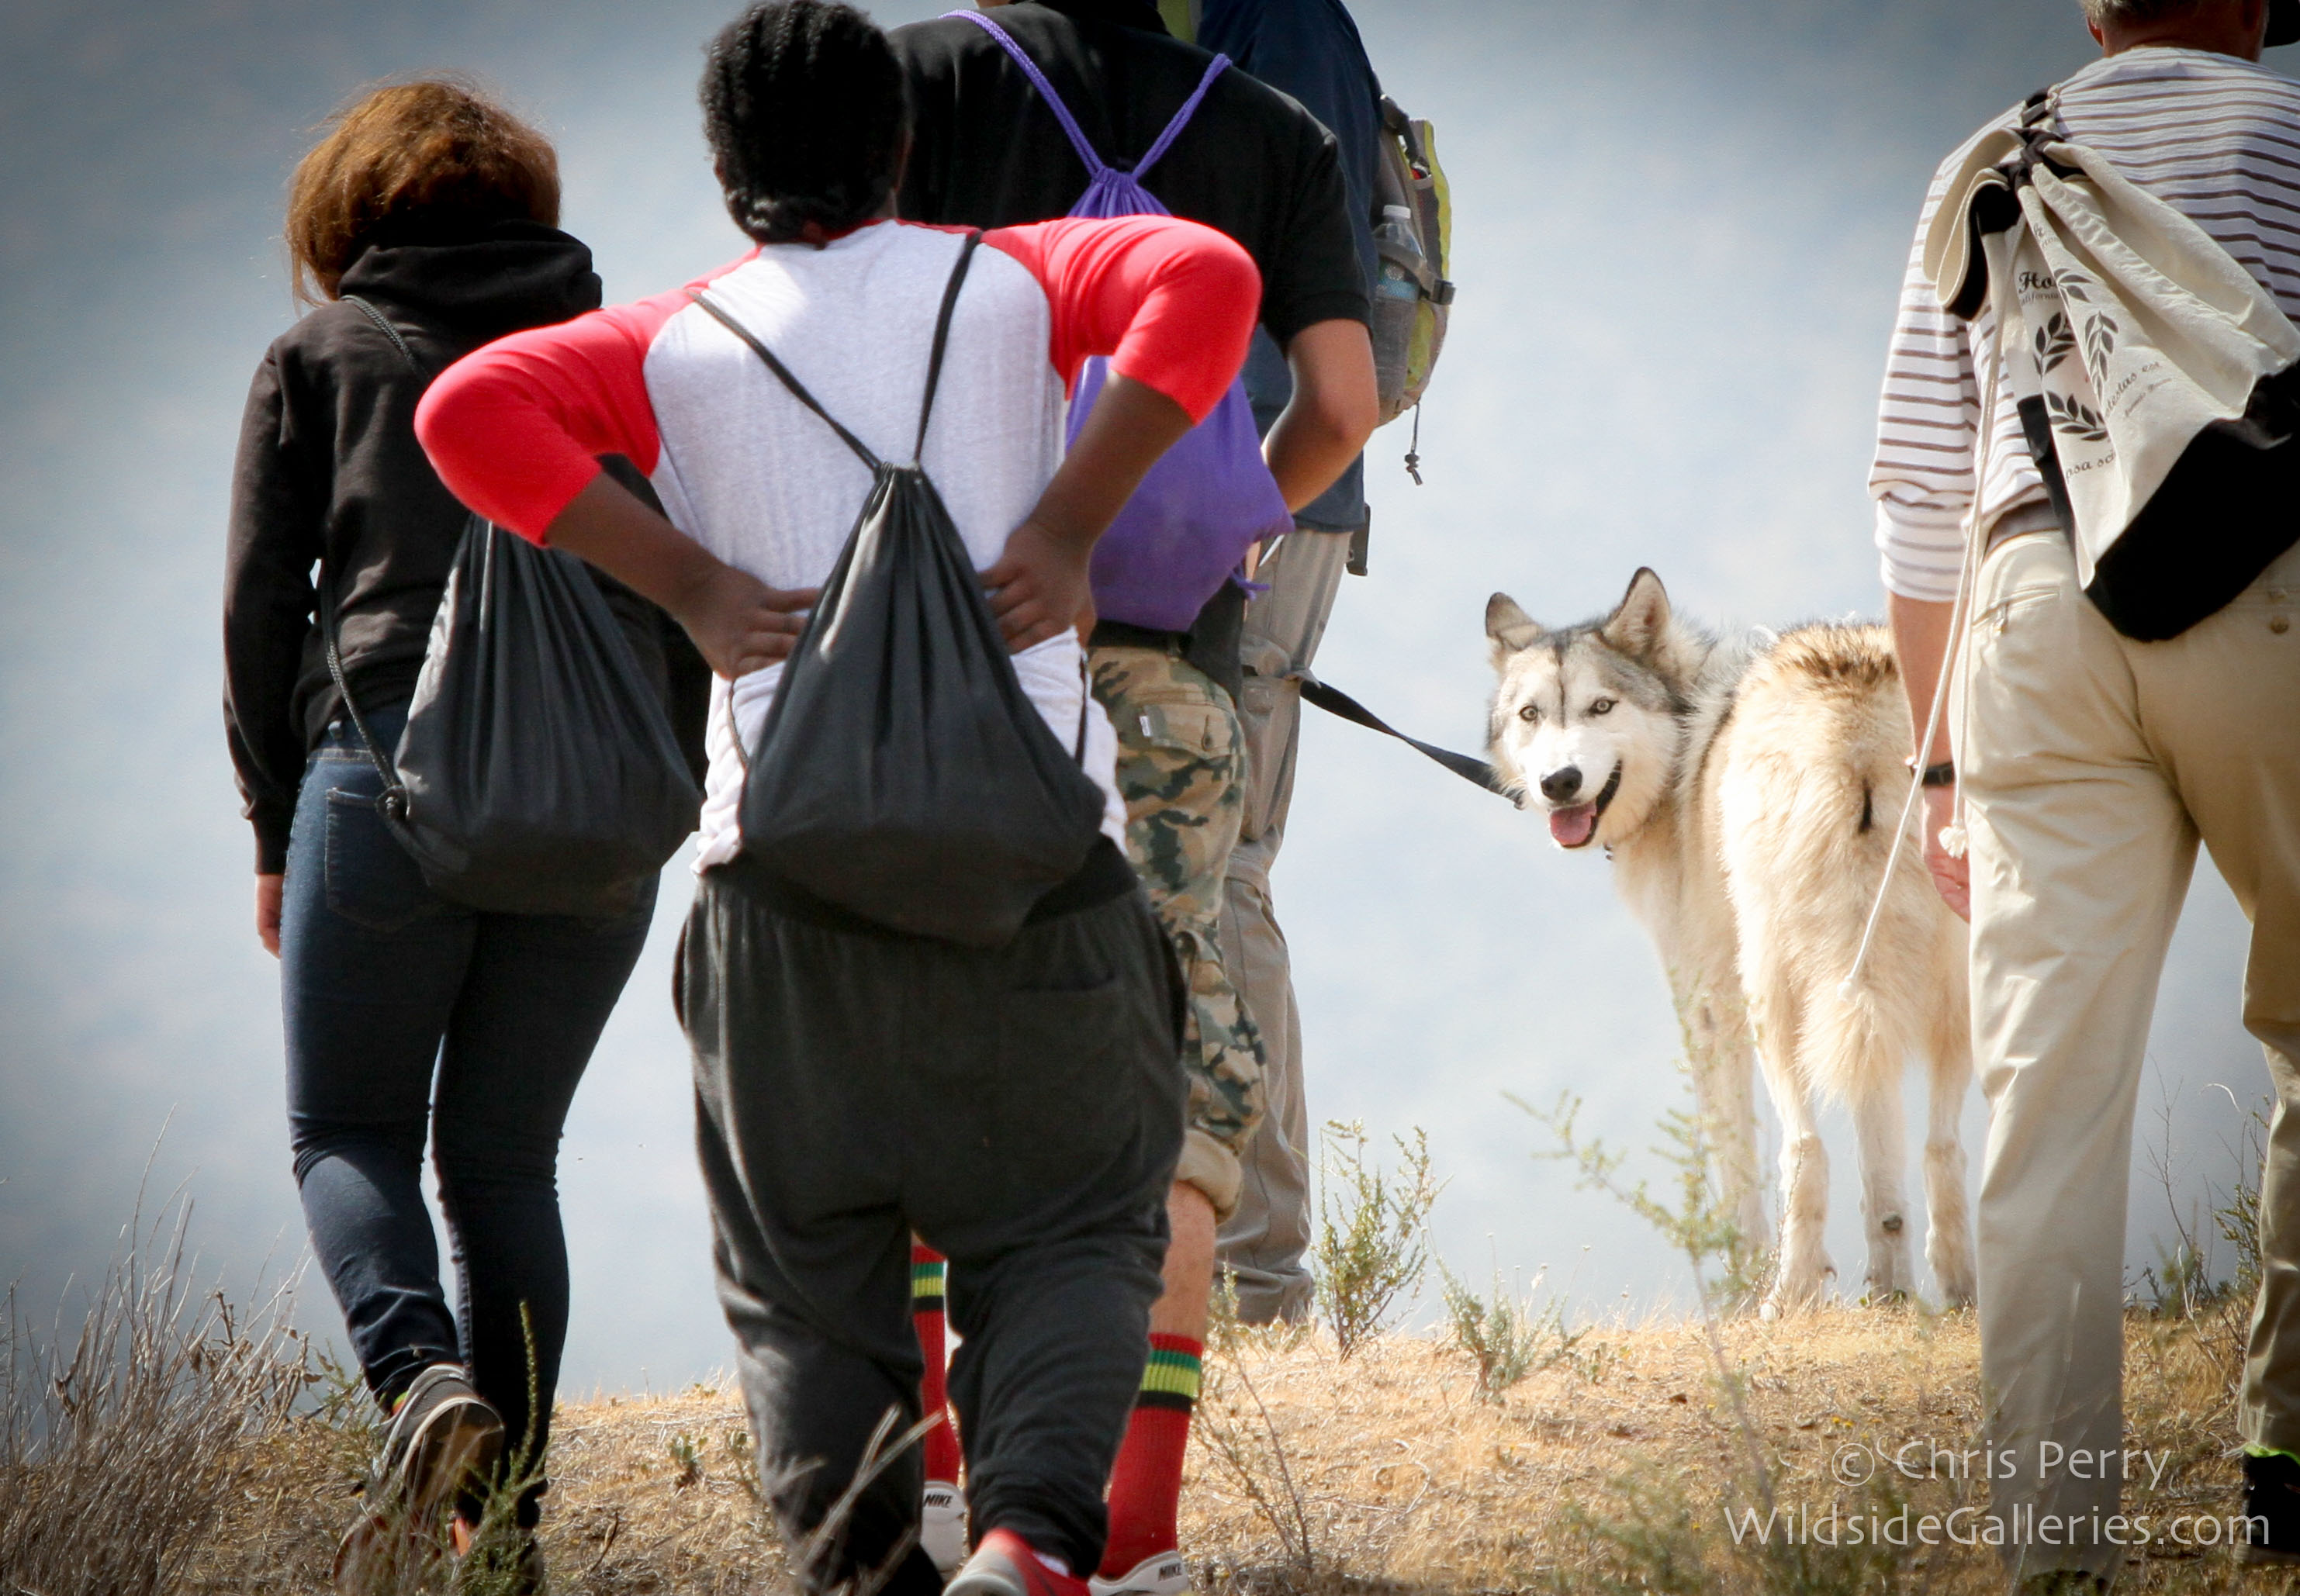 Wolfdog Ryder joins participants on a hike.